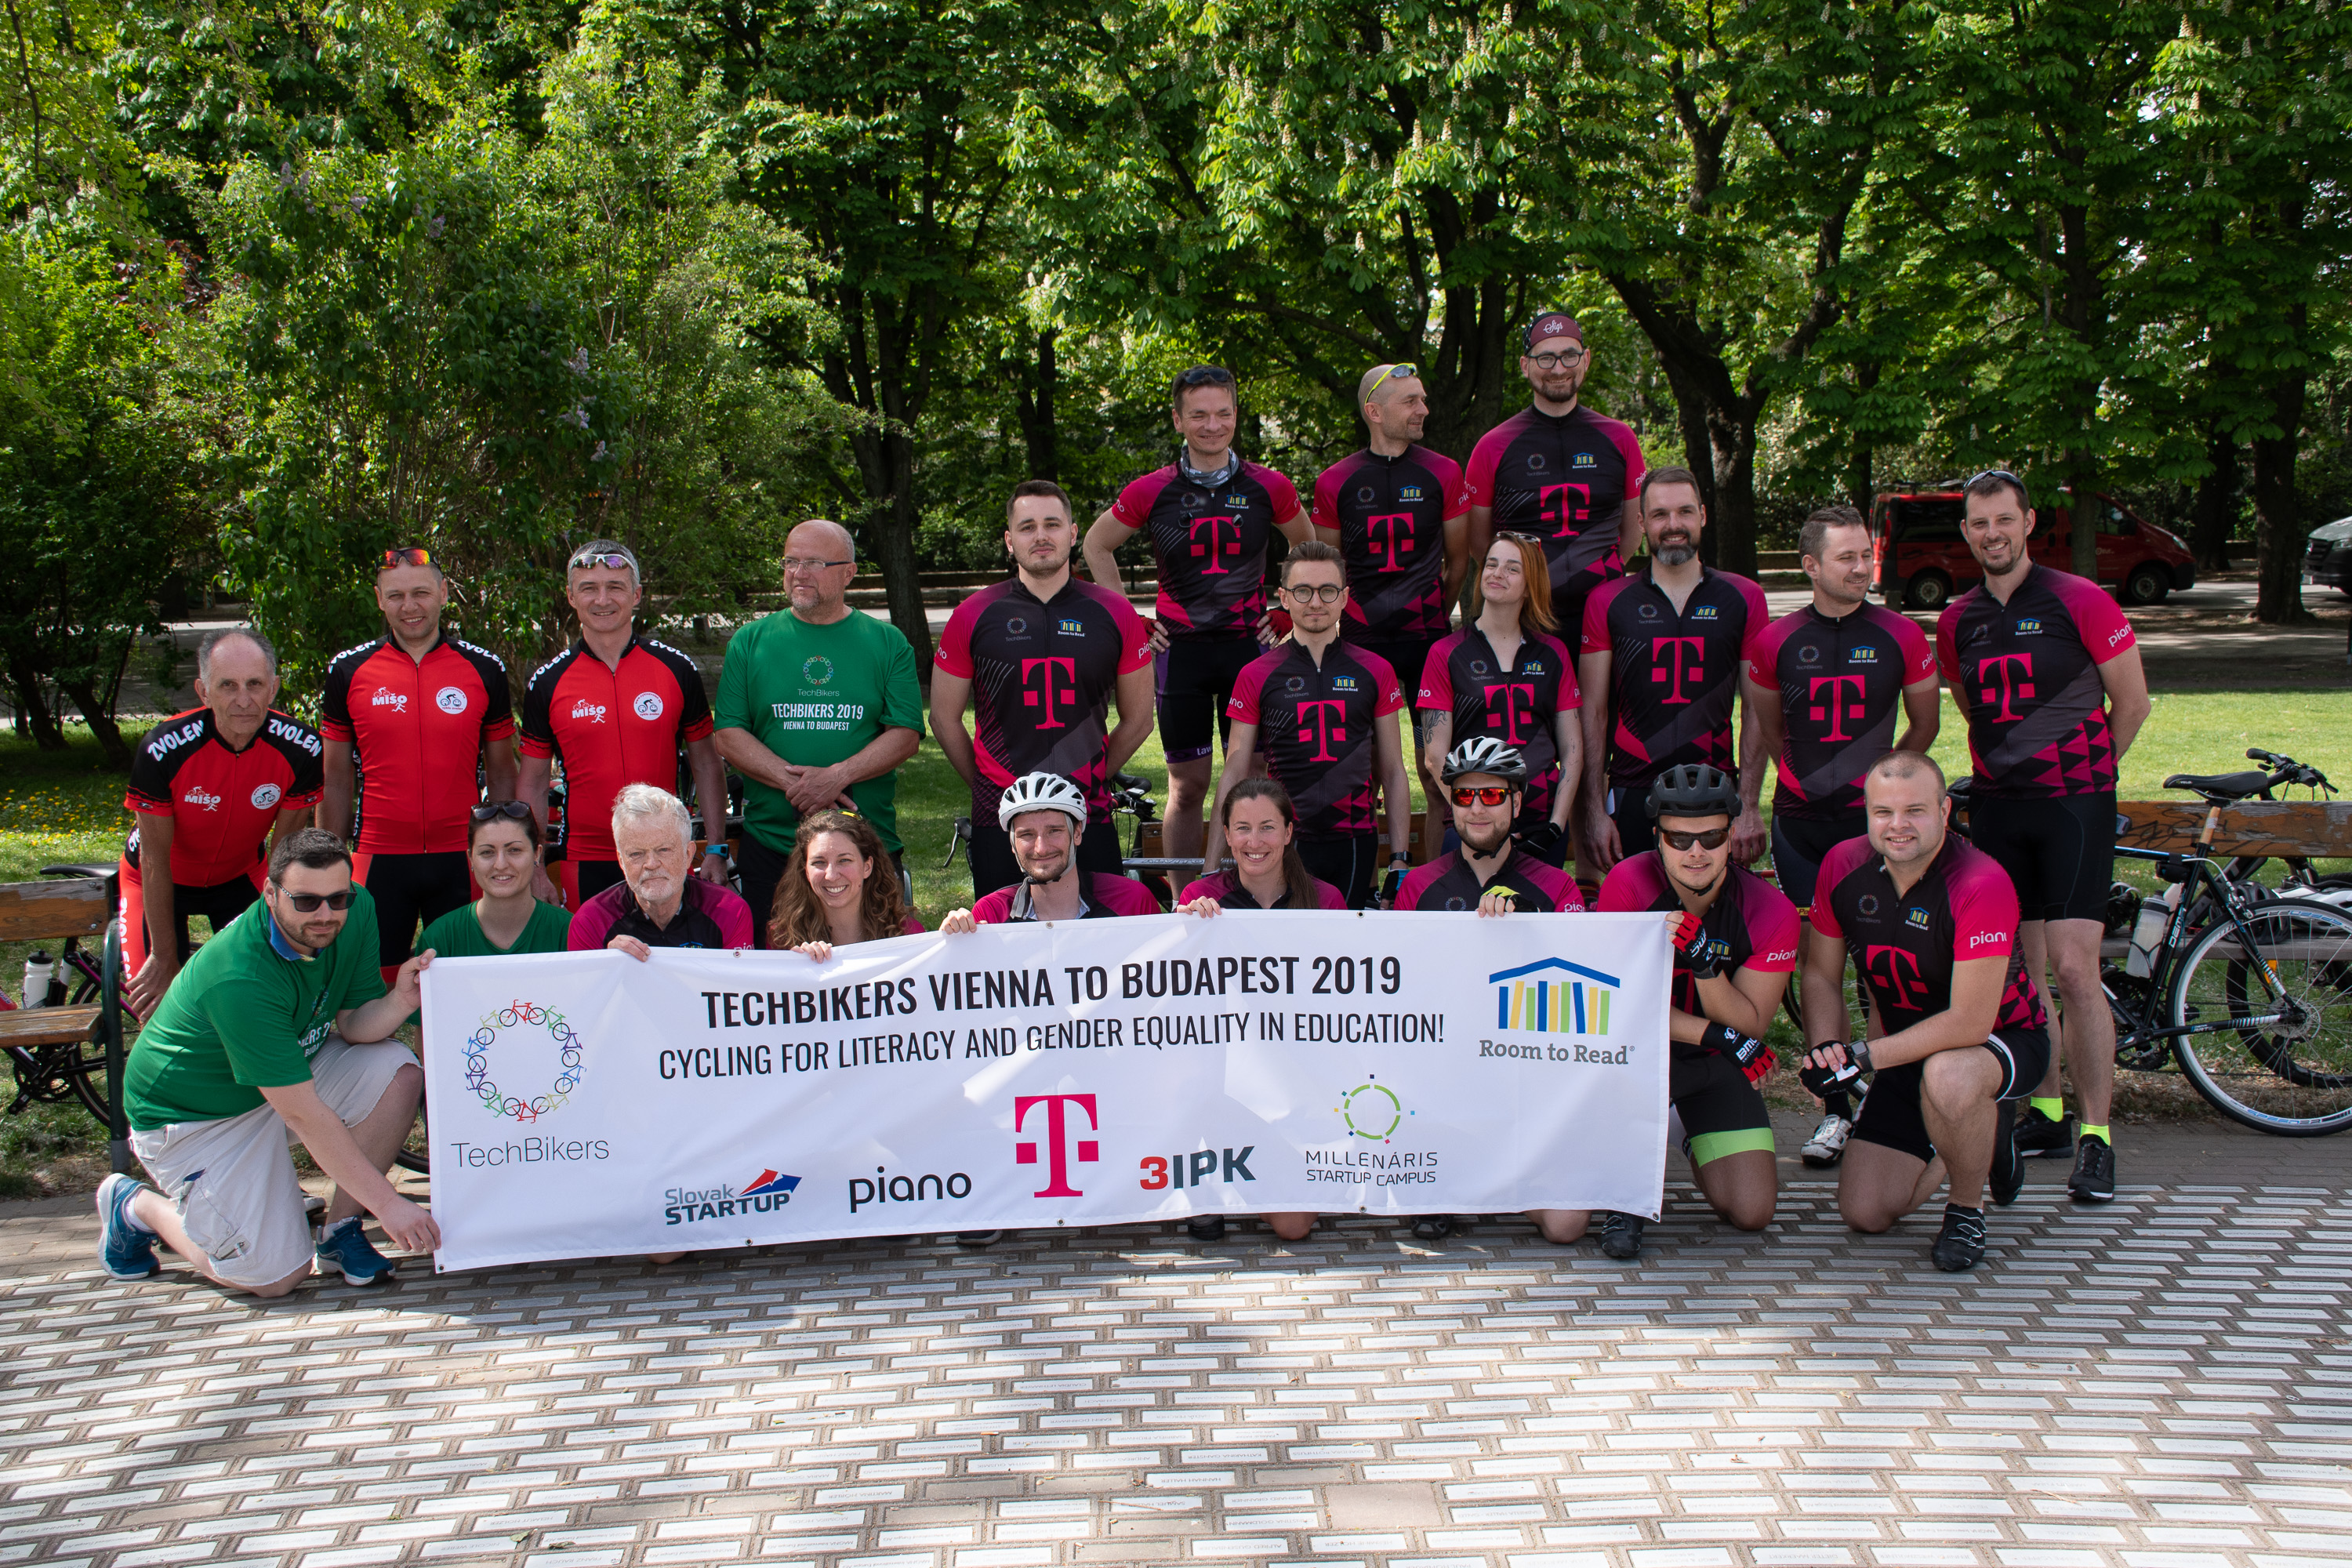 Techbikers CEE 2019: Departure from Vienna